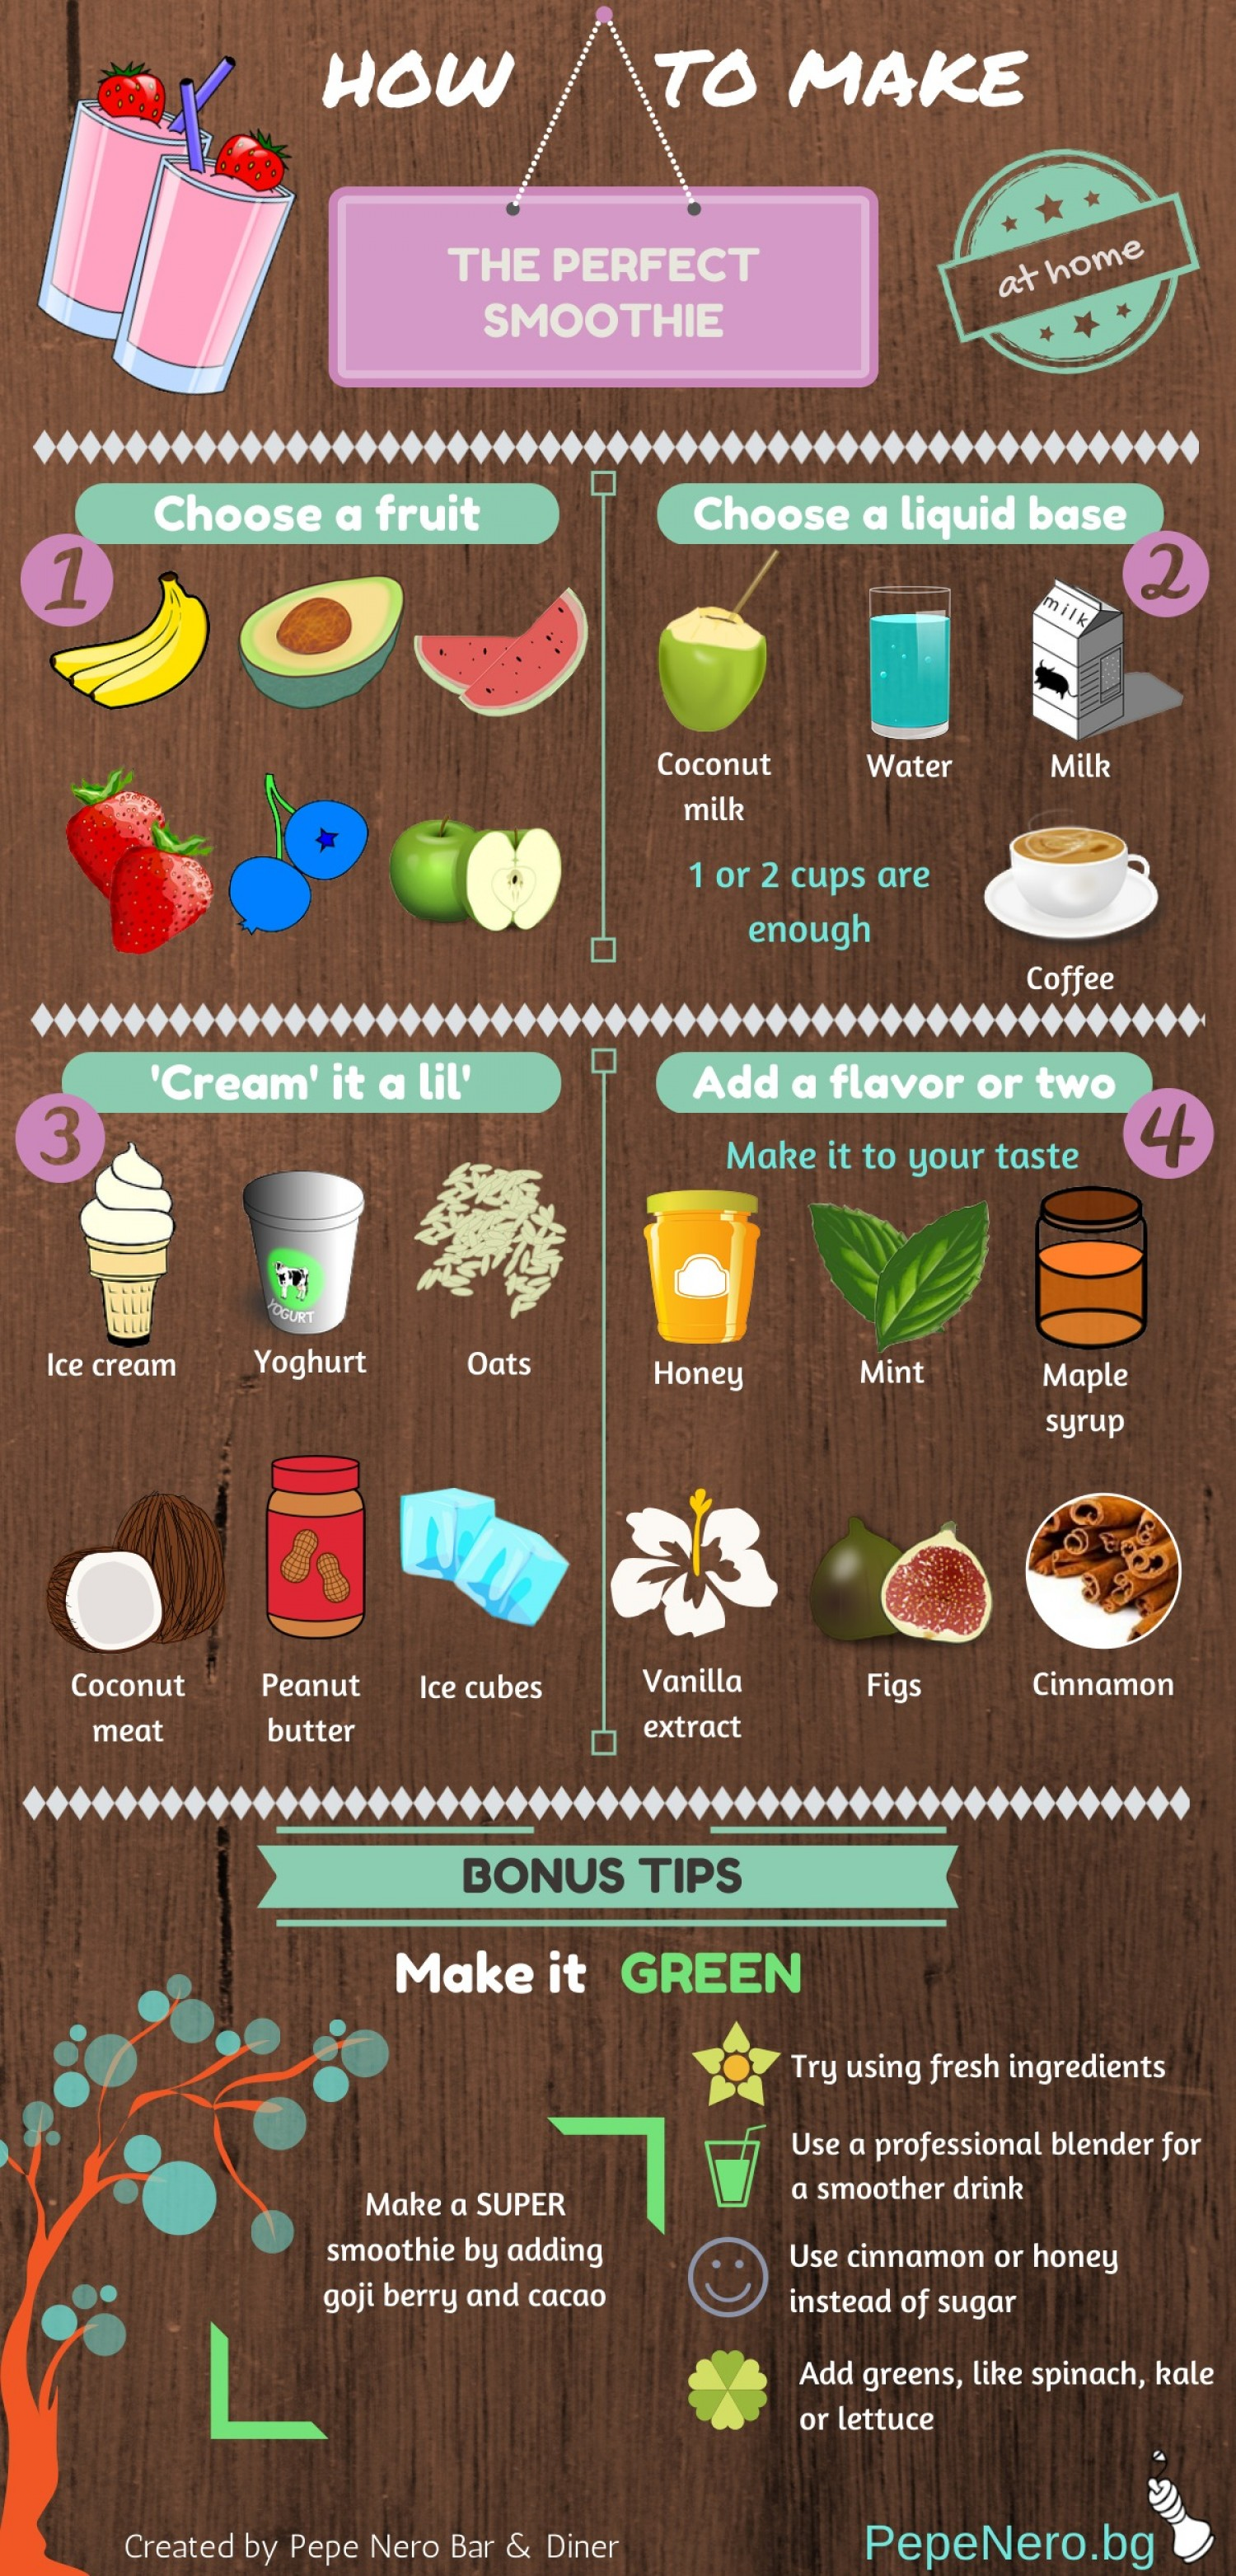 Create A Retro Inspired Capsule Wardrobe: Top 10 Nutrition Infographics You Must See To Learn